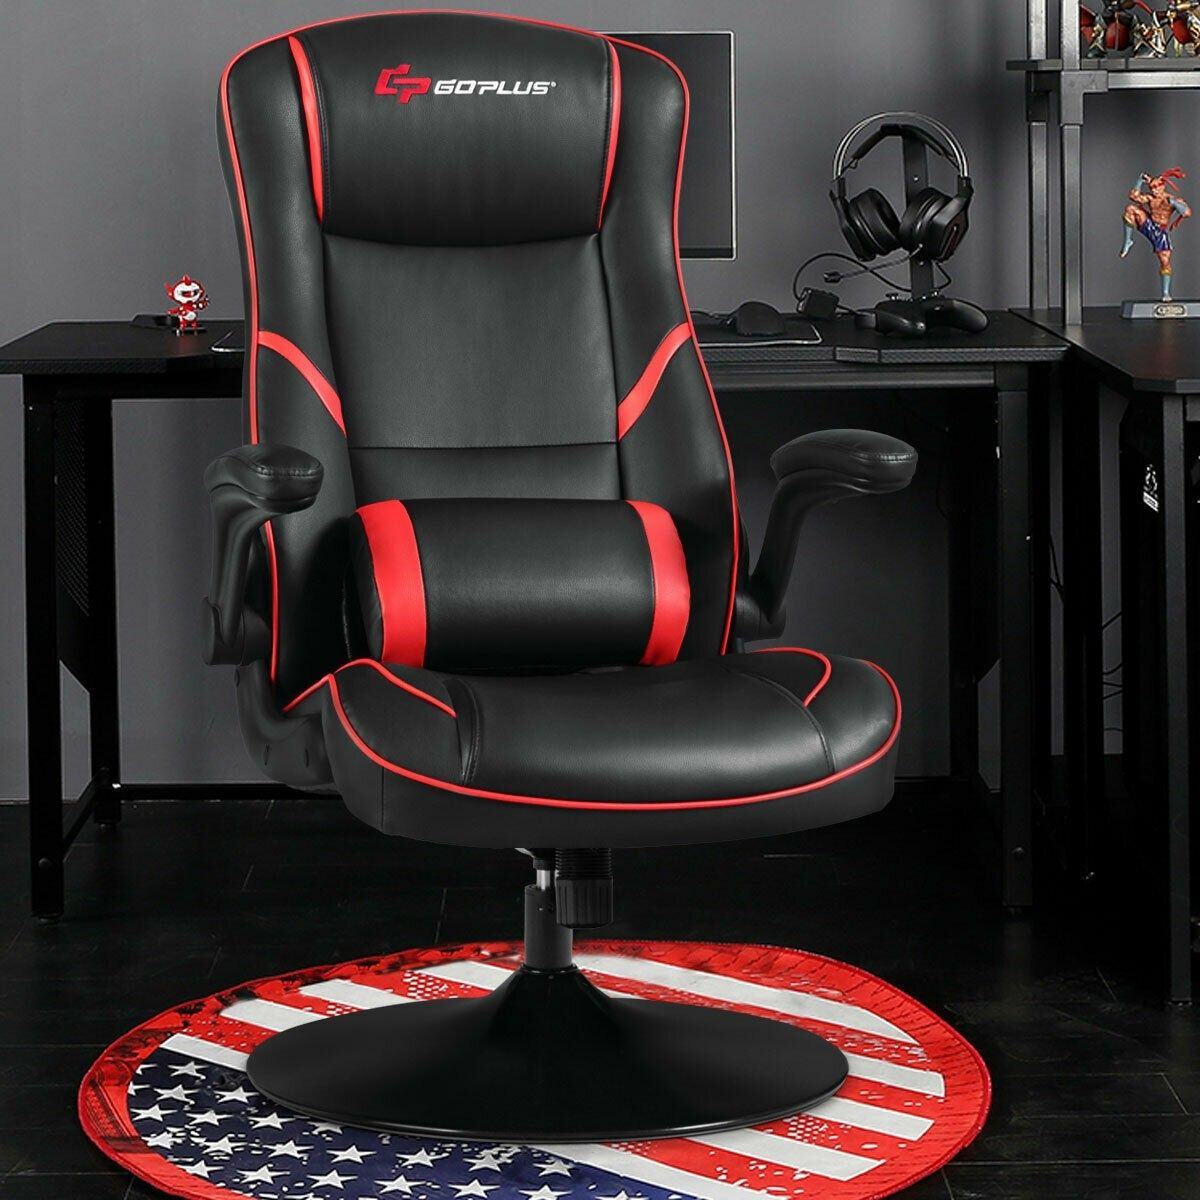 Racing Style Gaming Rocker Chair in 2020 Rocker chairs